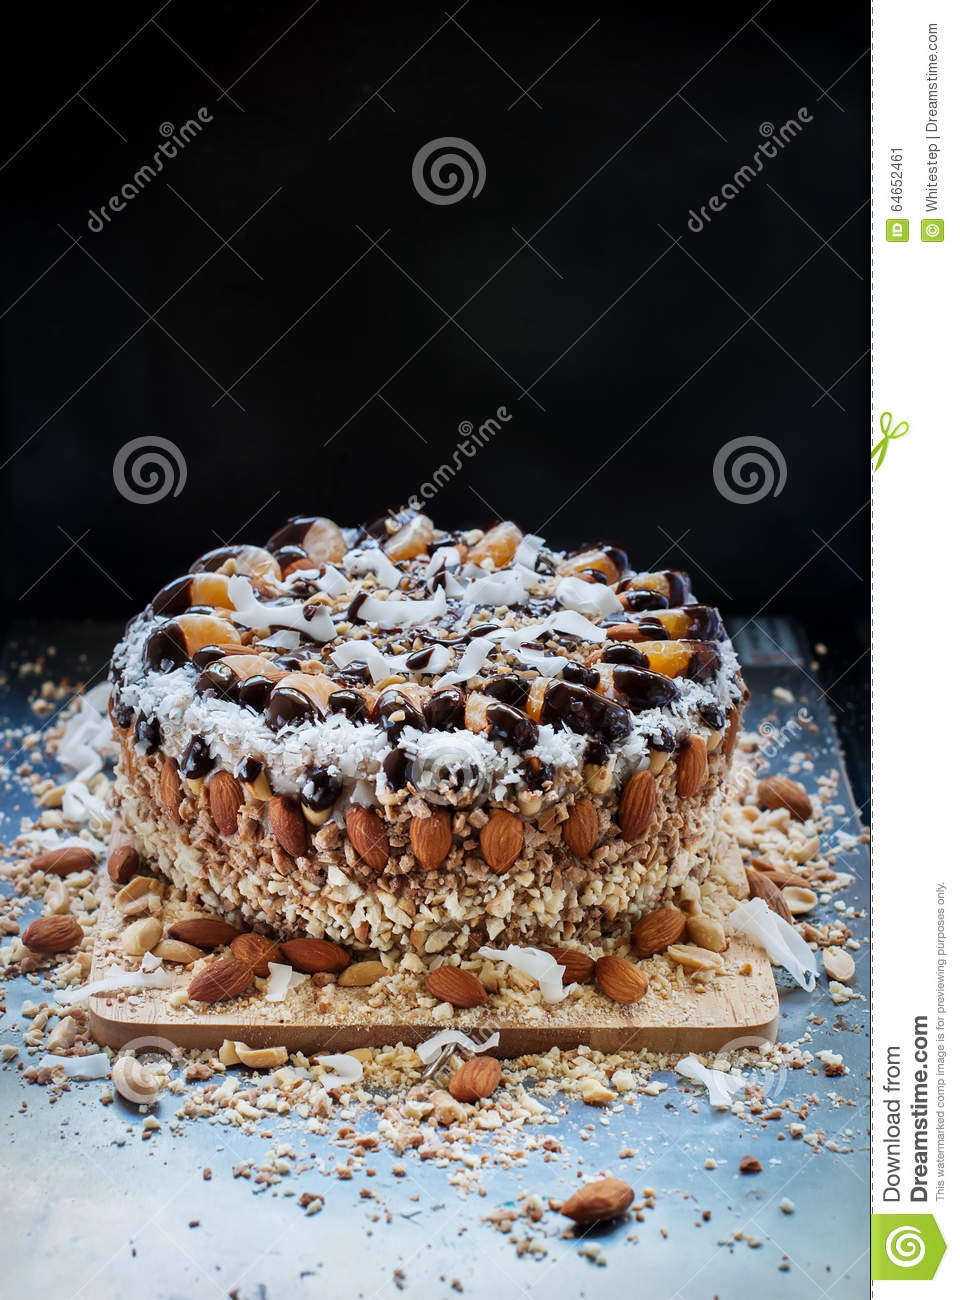 Christmas cake decoration with fruit and nuts - Rich Christmas Cake Decorated With Fruits Nuts And Crumbs